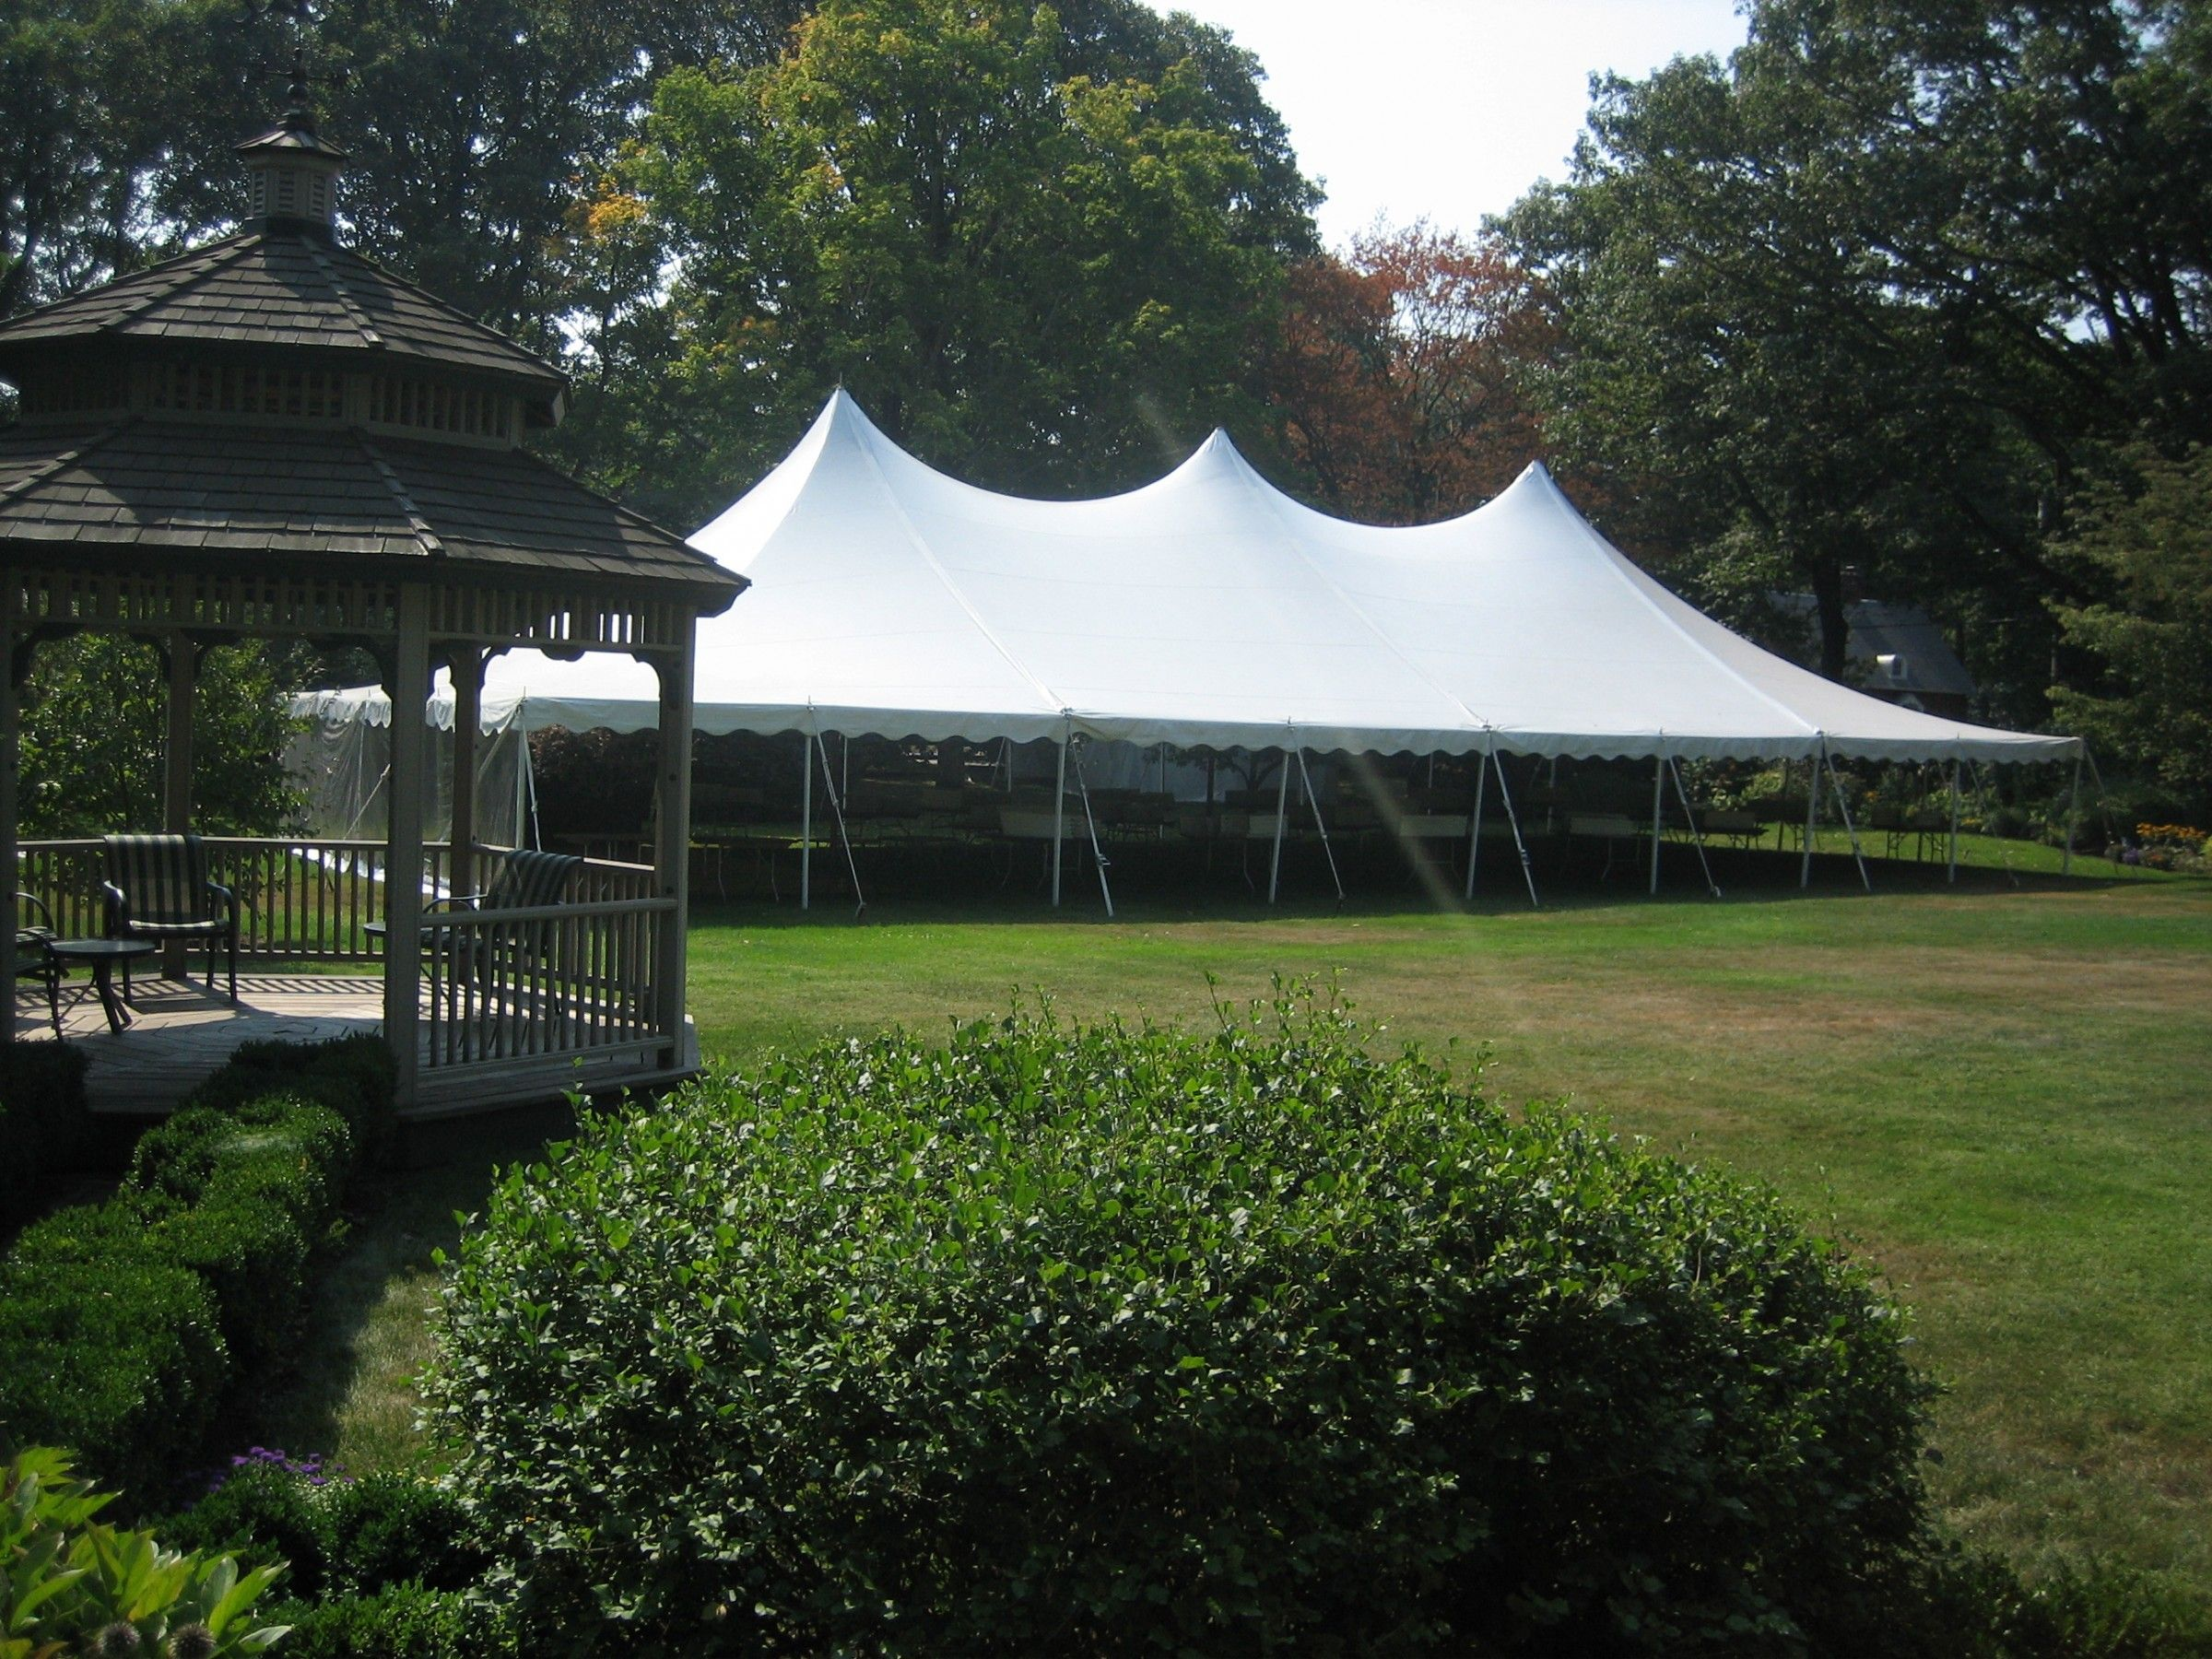 Tent Pricing All prices include Clear Plastic Mesh or Solid White sidewalls if needed. & Tent Pricing All prices include Clear Plastic Mesh or Solid White ...